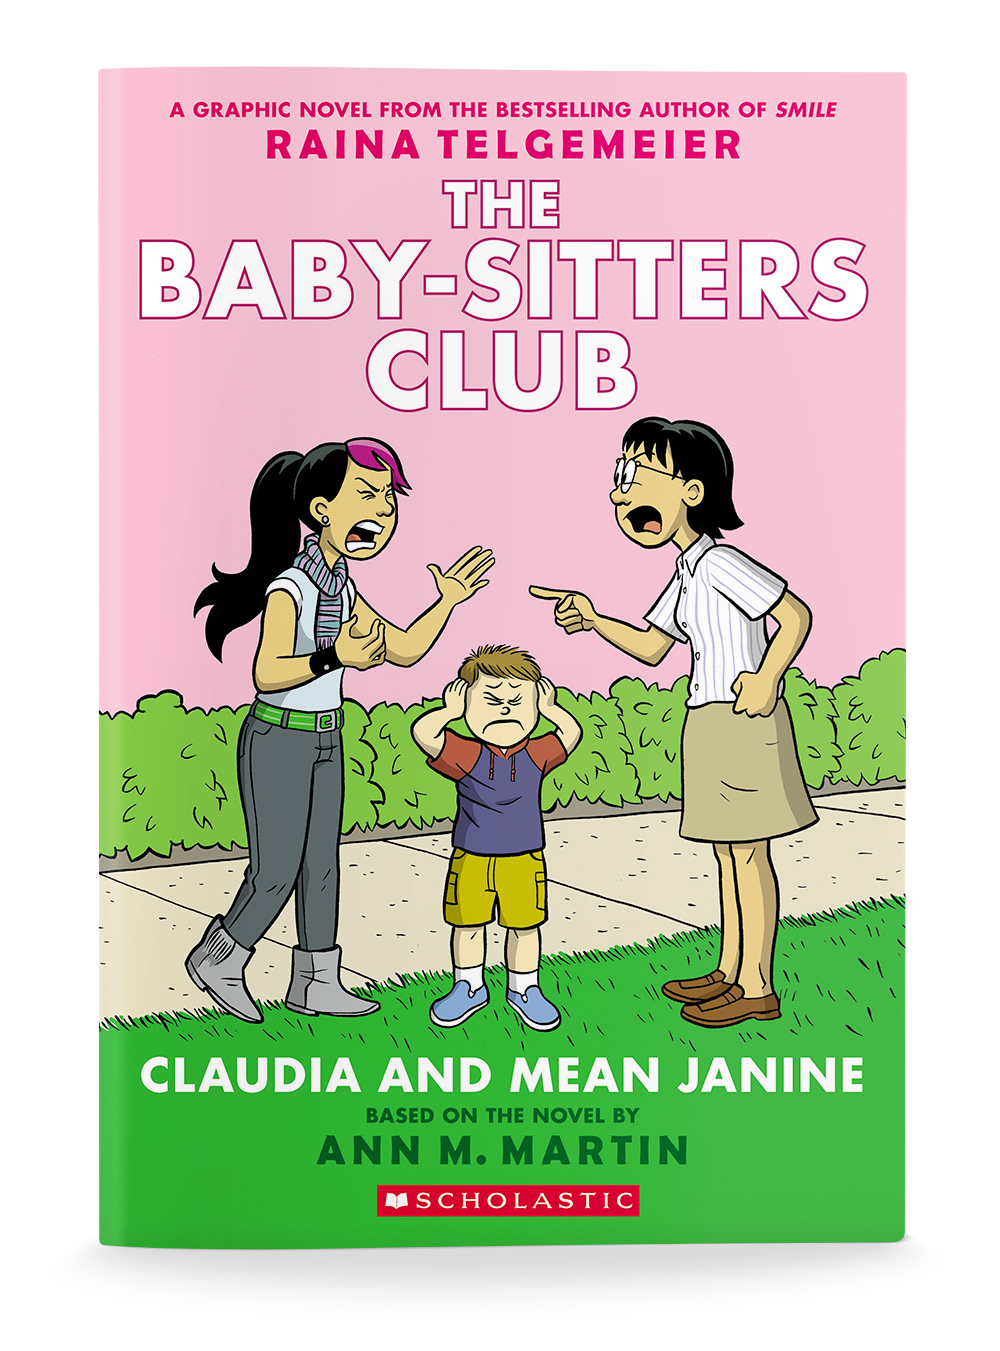 Baby-sitters Club #4